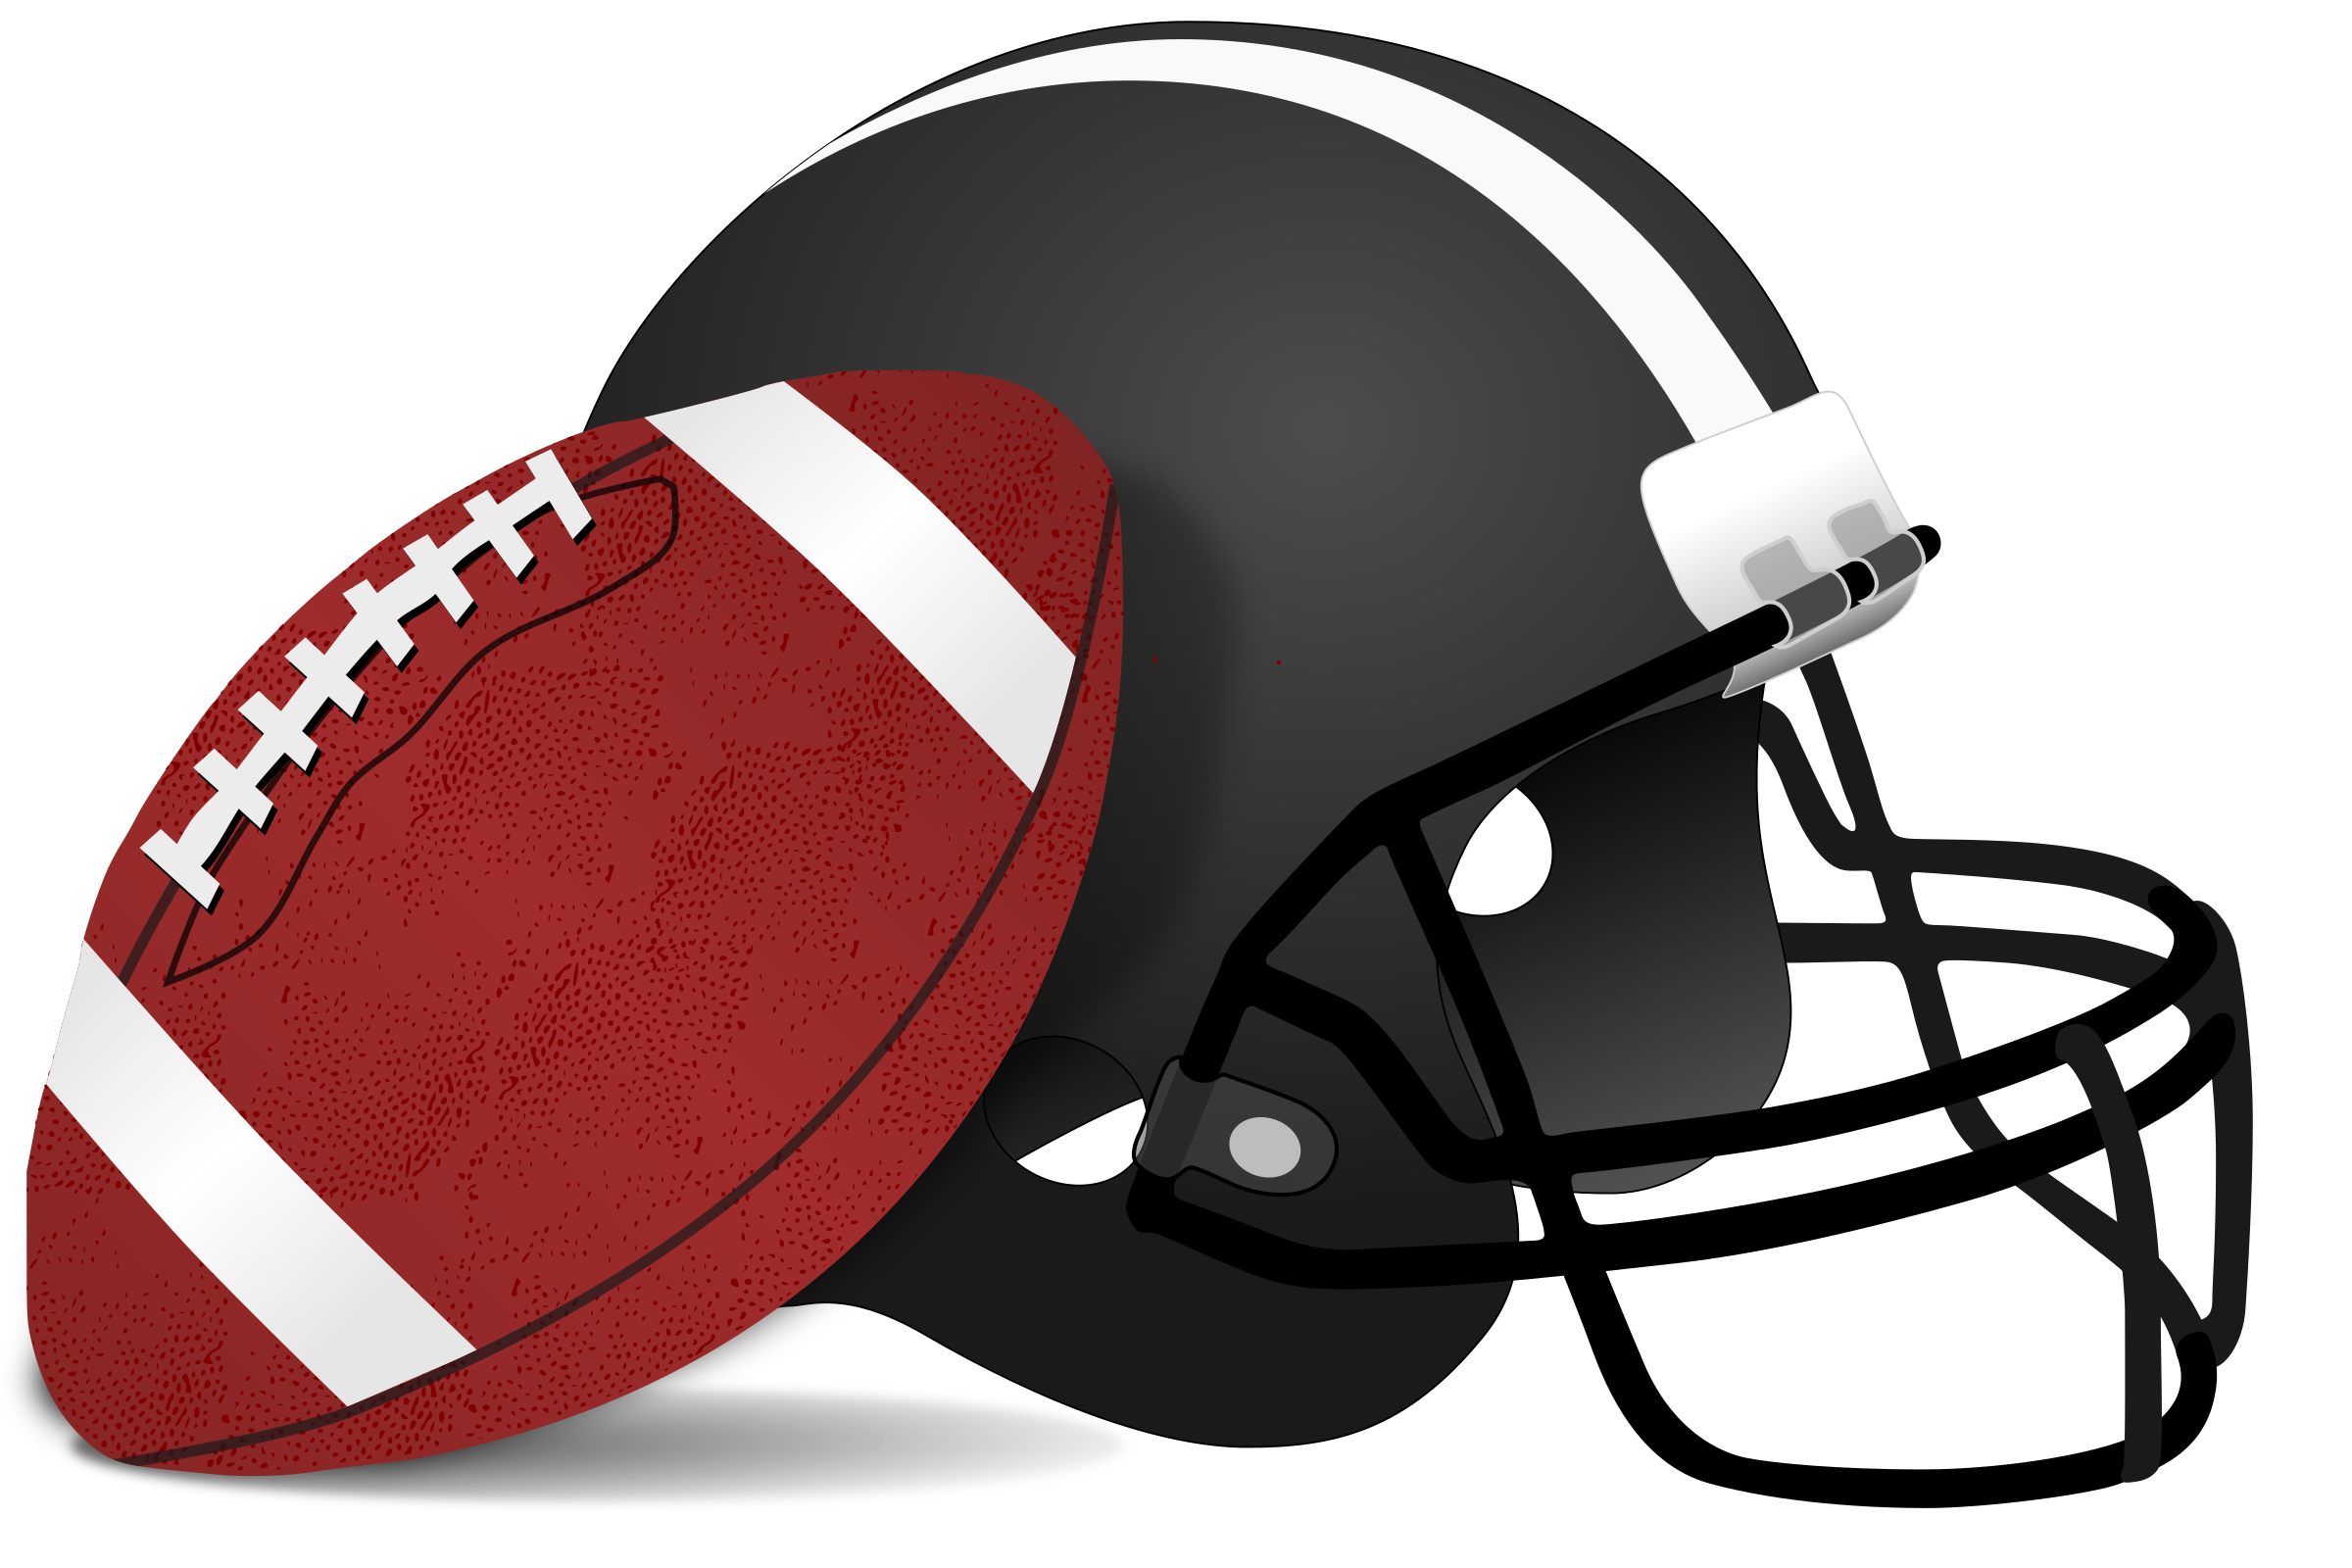 Football and Helmet vector file image - Free stock photo ...